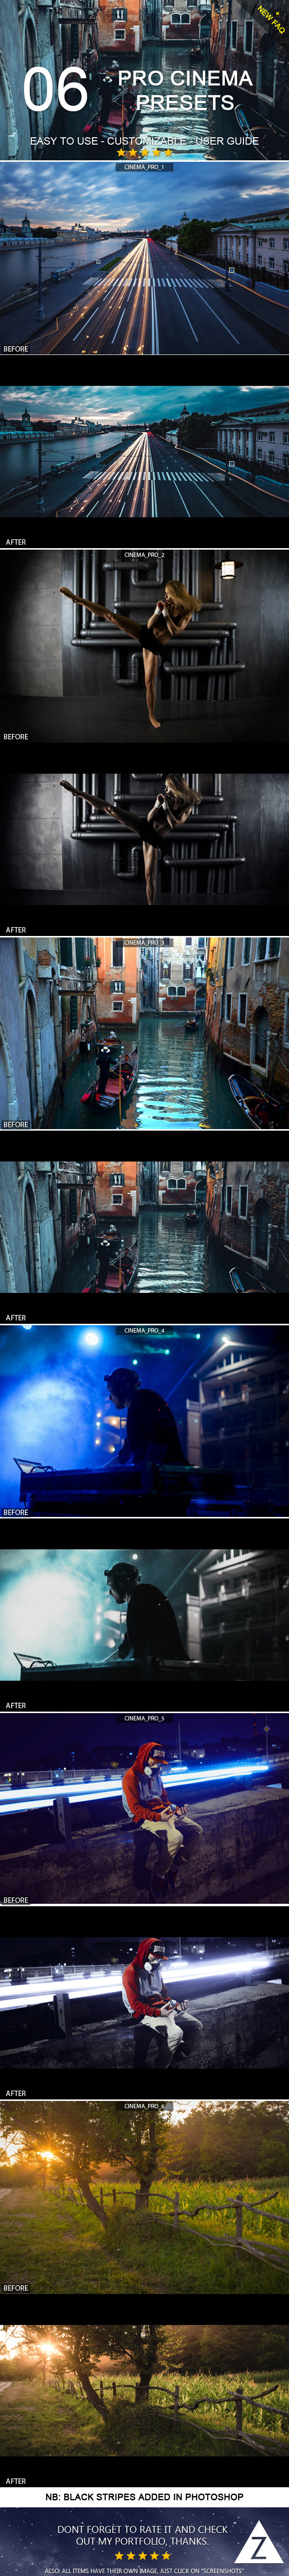 6 Pro Cinema Presets - Cinematic Lightroom Presets